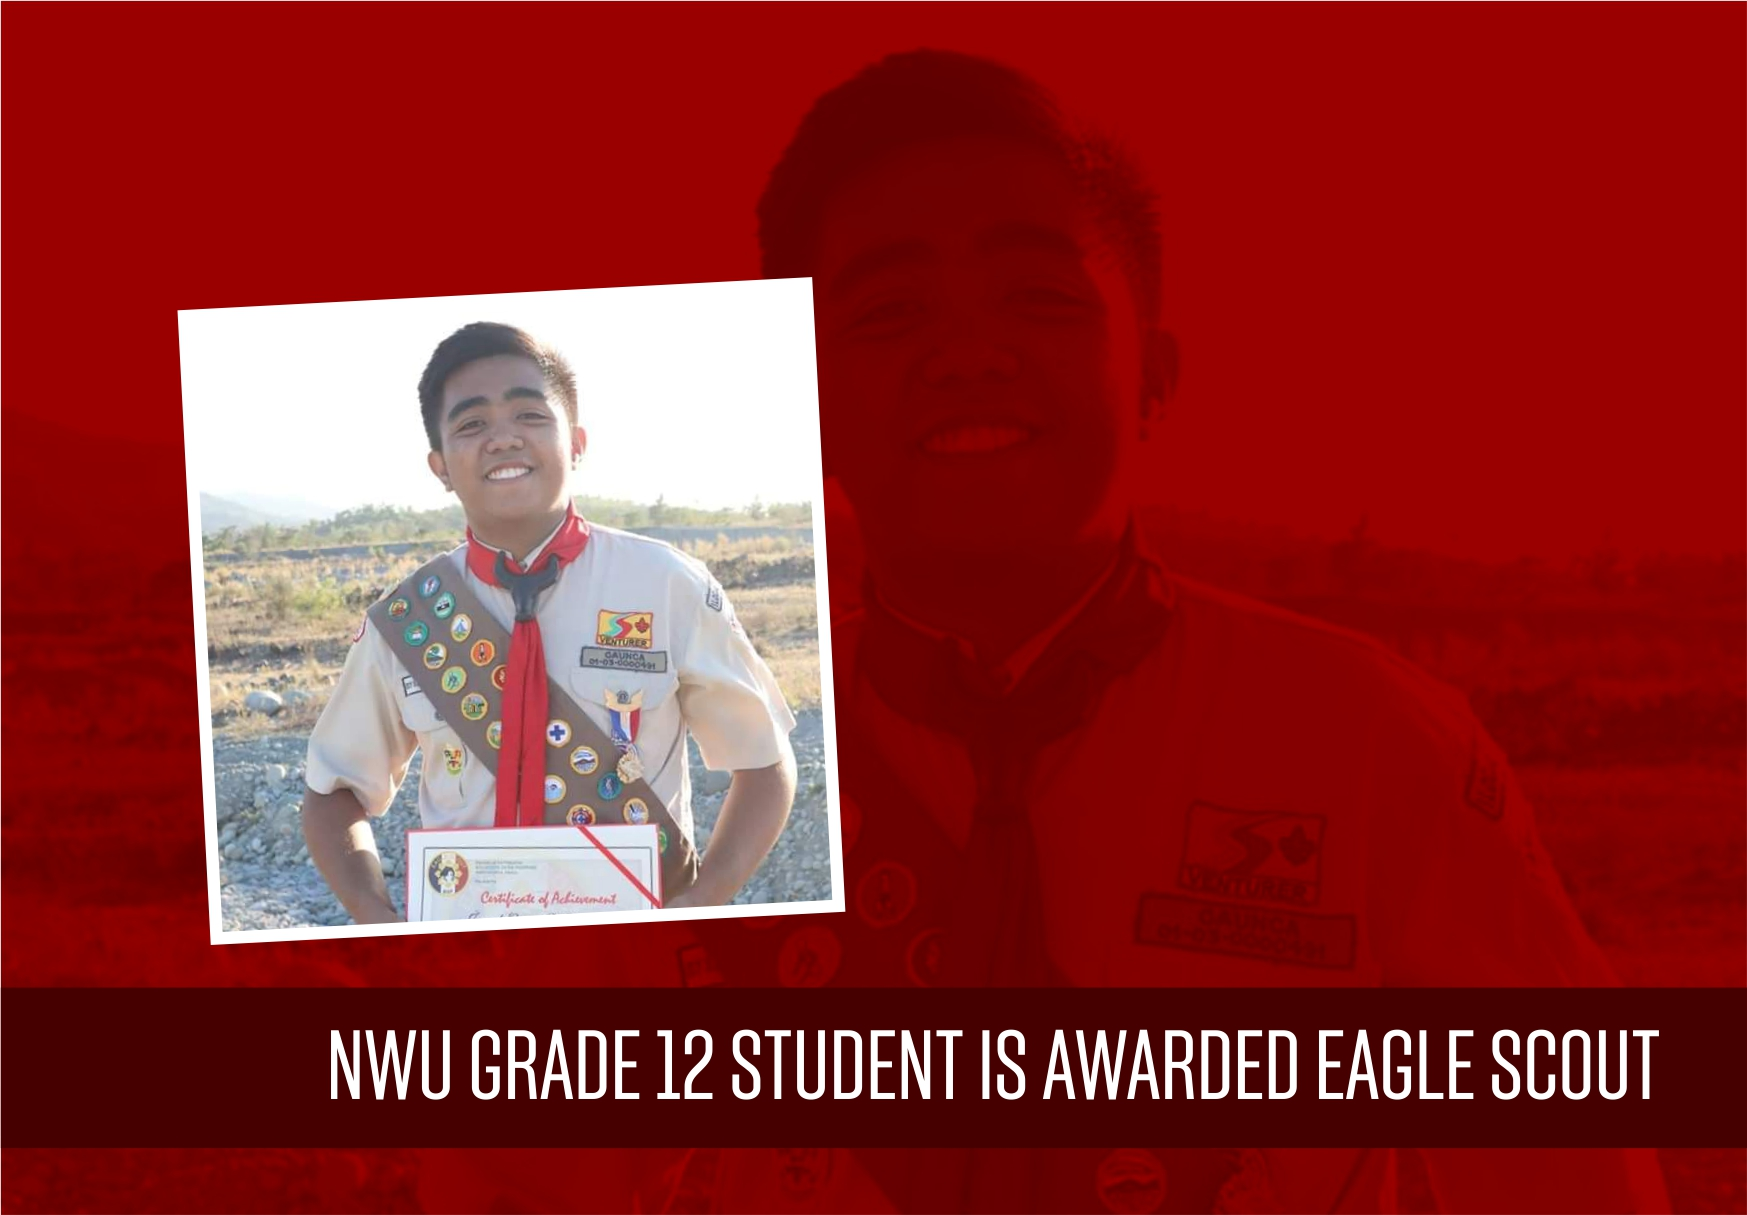 Jezreel Larry Caunca: The First Eagle Scout in Ilocos Norte after 14 years